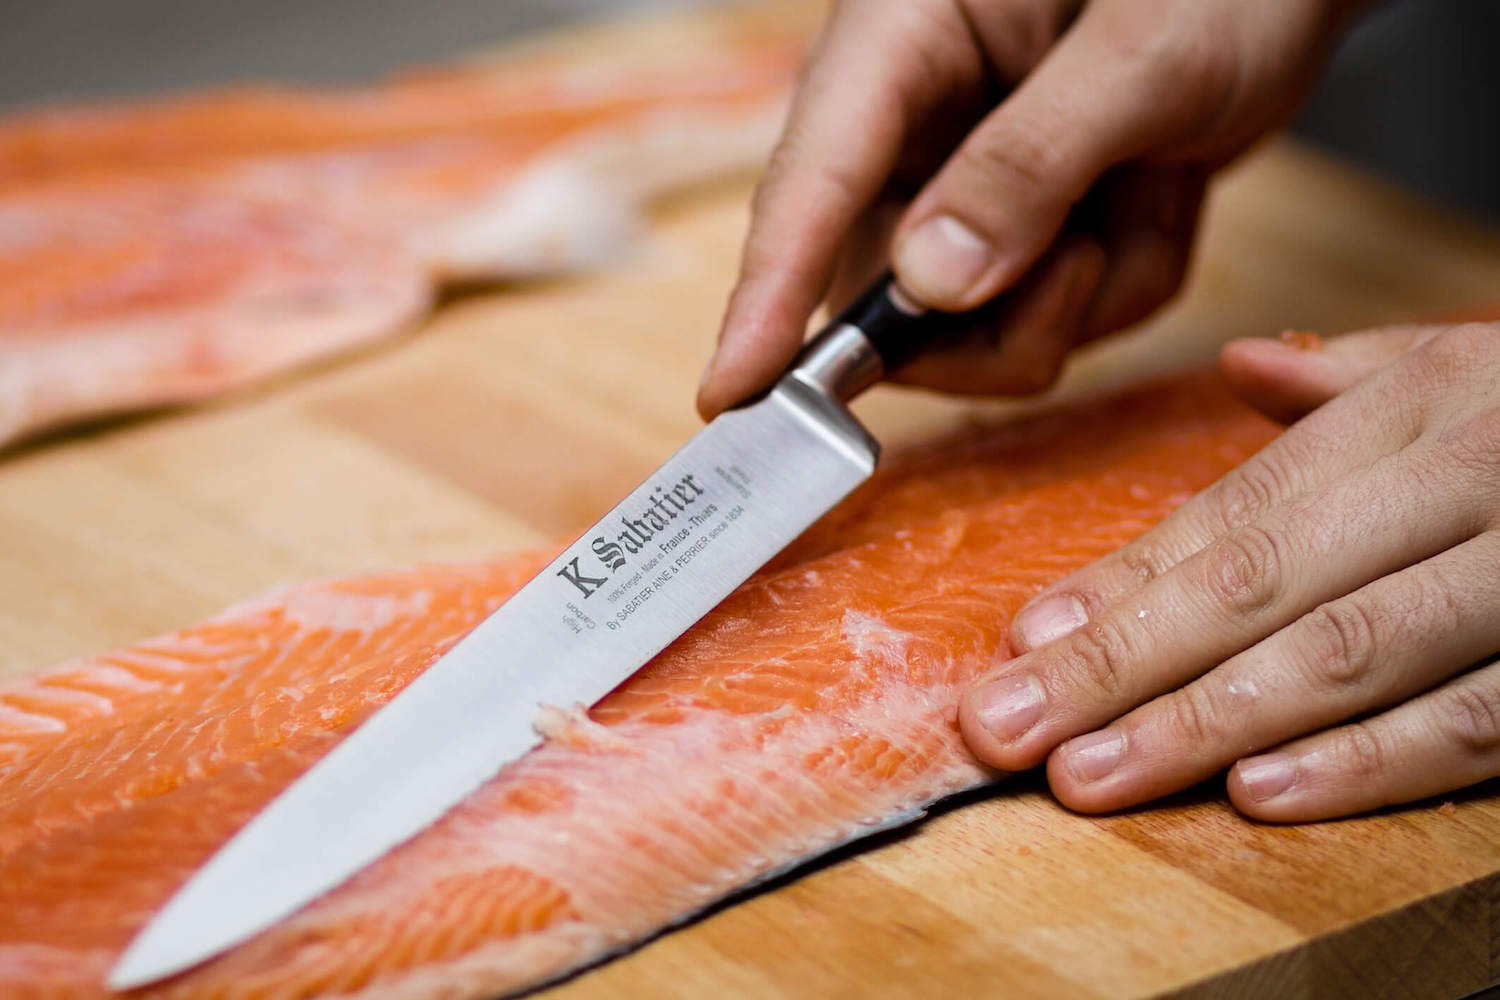 Sabatier Filet knife